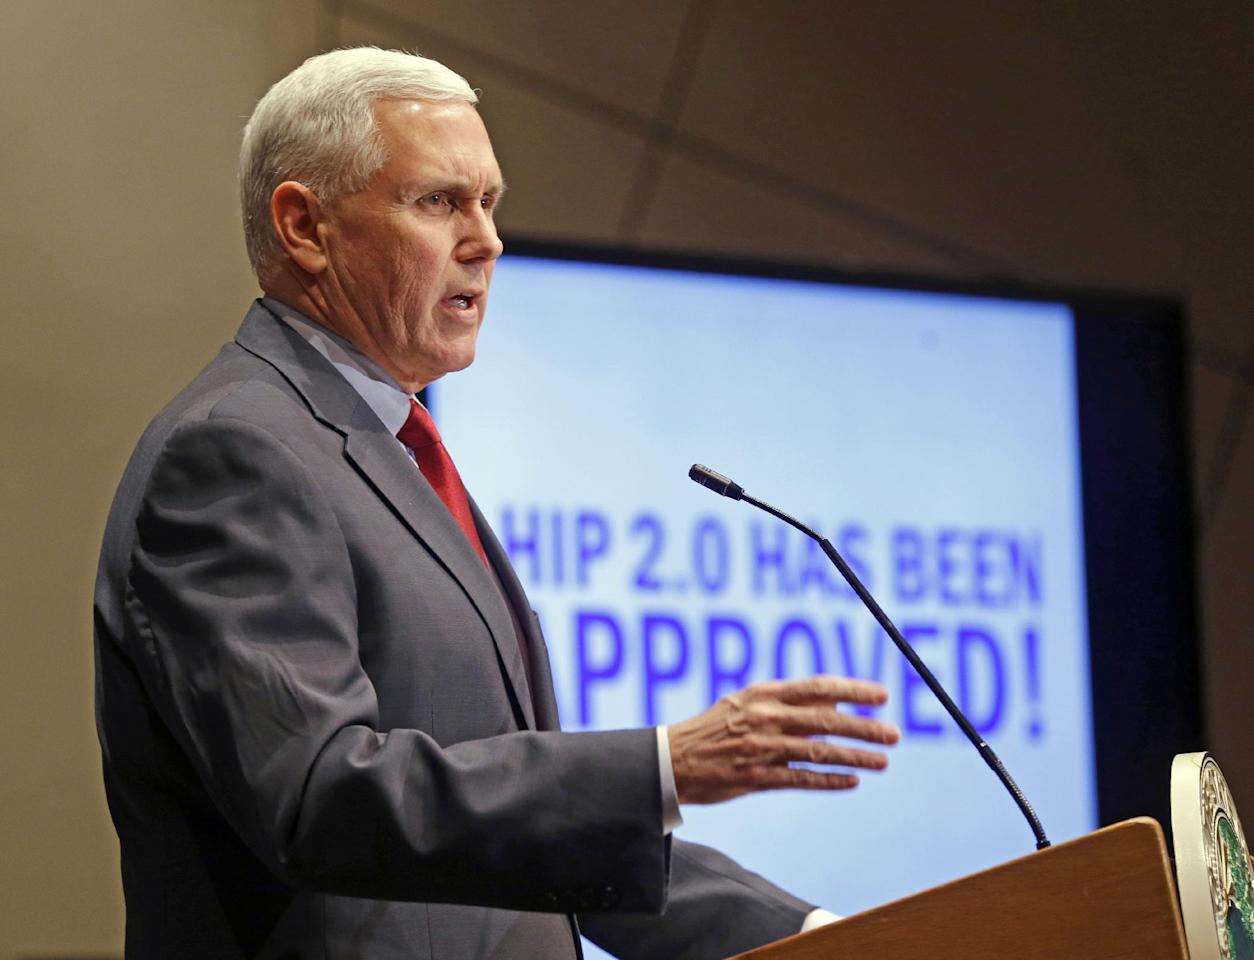 "FILE - In this Jan. 27, 2015, file photo, Indiana Republican Gov. Mike Pence announces that the Centers for Medicaid and Medicare Services had approved the state's waiver request, called HIP 2.0, during a speech in Indianapolis. Pence told Republican governors meeting in Florida on Nov. 14, 2016, that Donald Trump would replace traditional Medicaid funding to states with block grants that ""encourage innovation that better delivers health care to eligible residents,"" according to a statement from the Trump transition team. (AP Photo/Michael Conroy, File)"